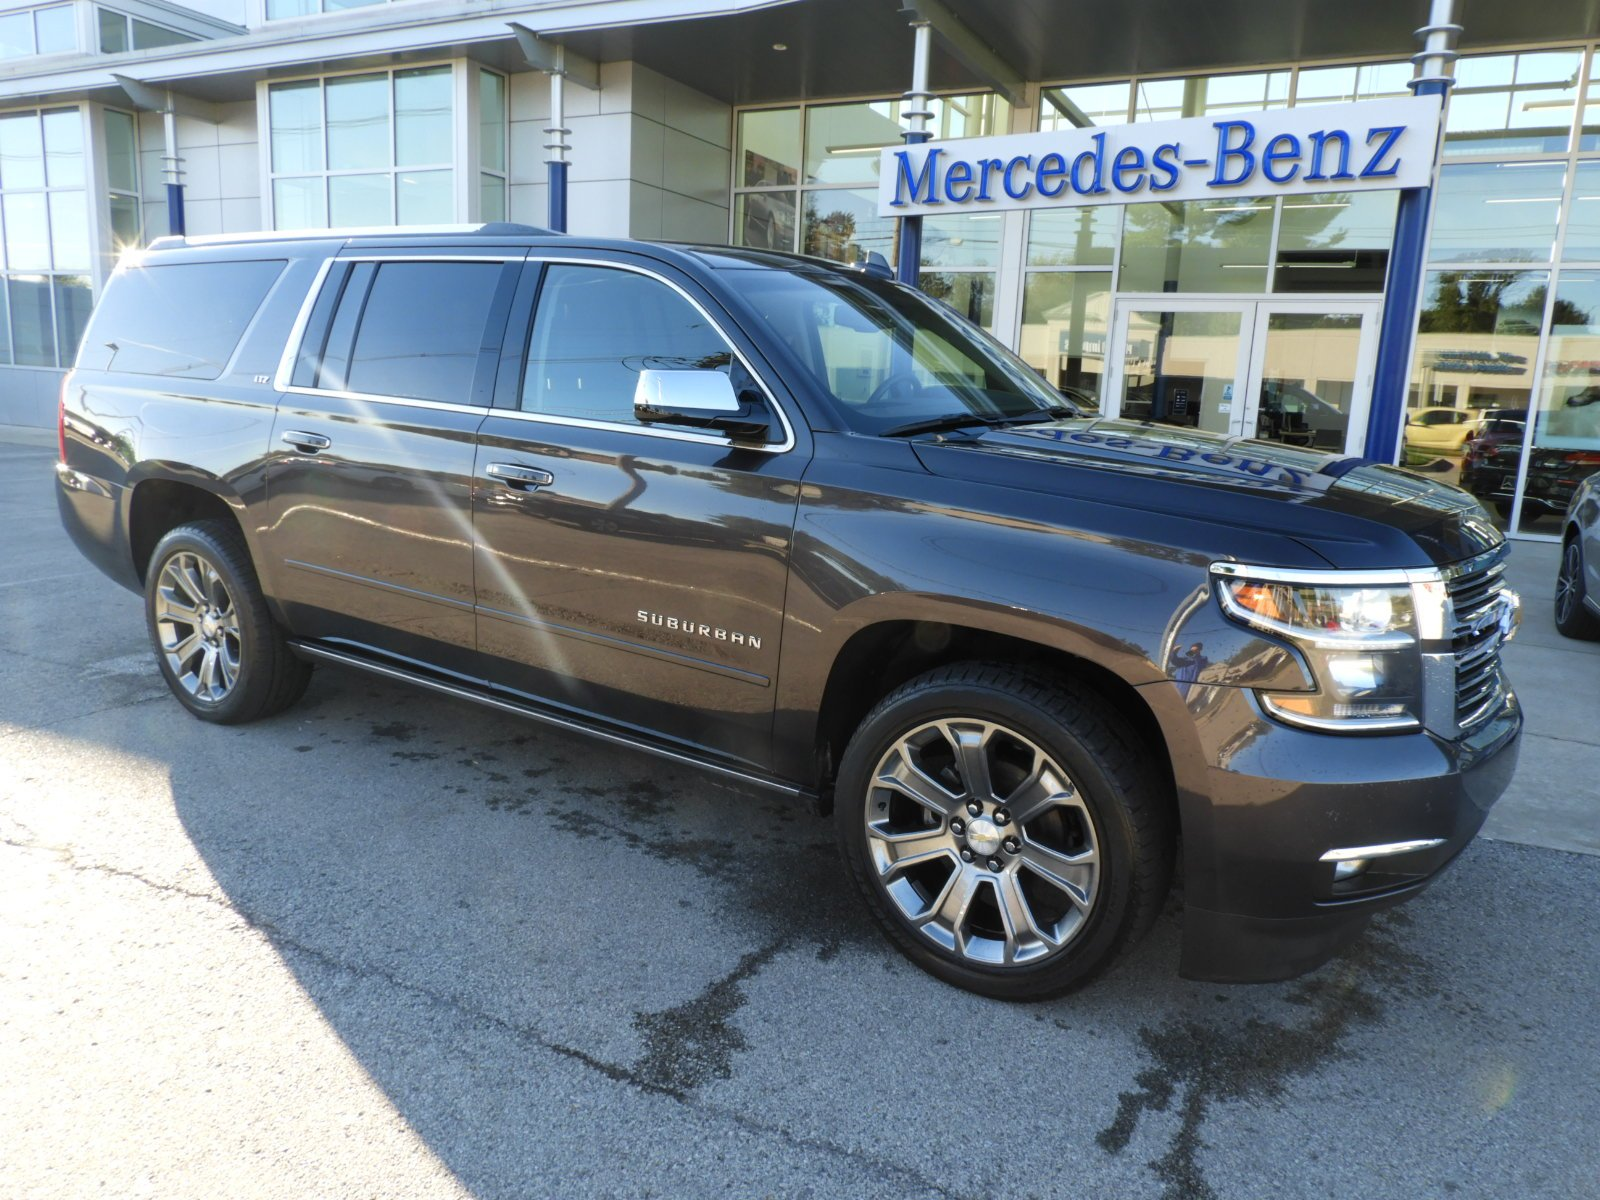 Stock Uc11517a Pre Owned 2015 Chevrolet Suburban Ltz 4wd Suv In Chevy Tahoe Chrome Roof Rack